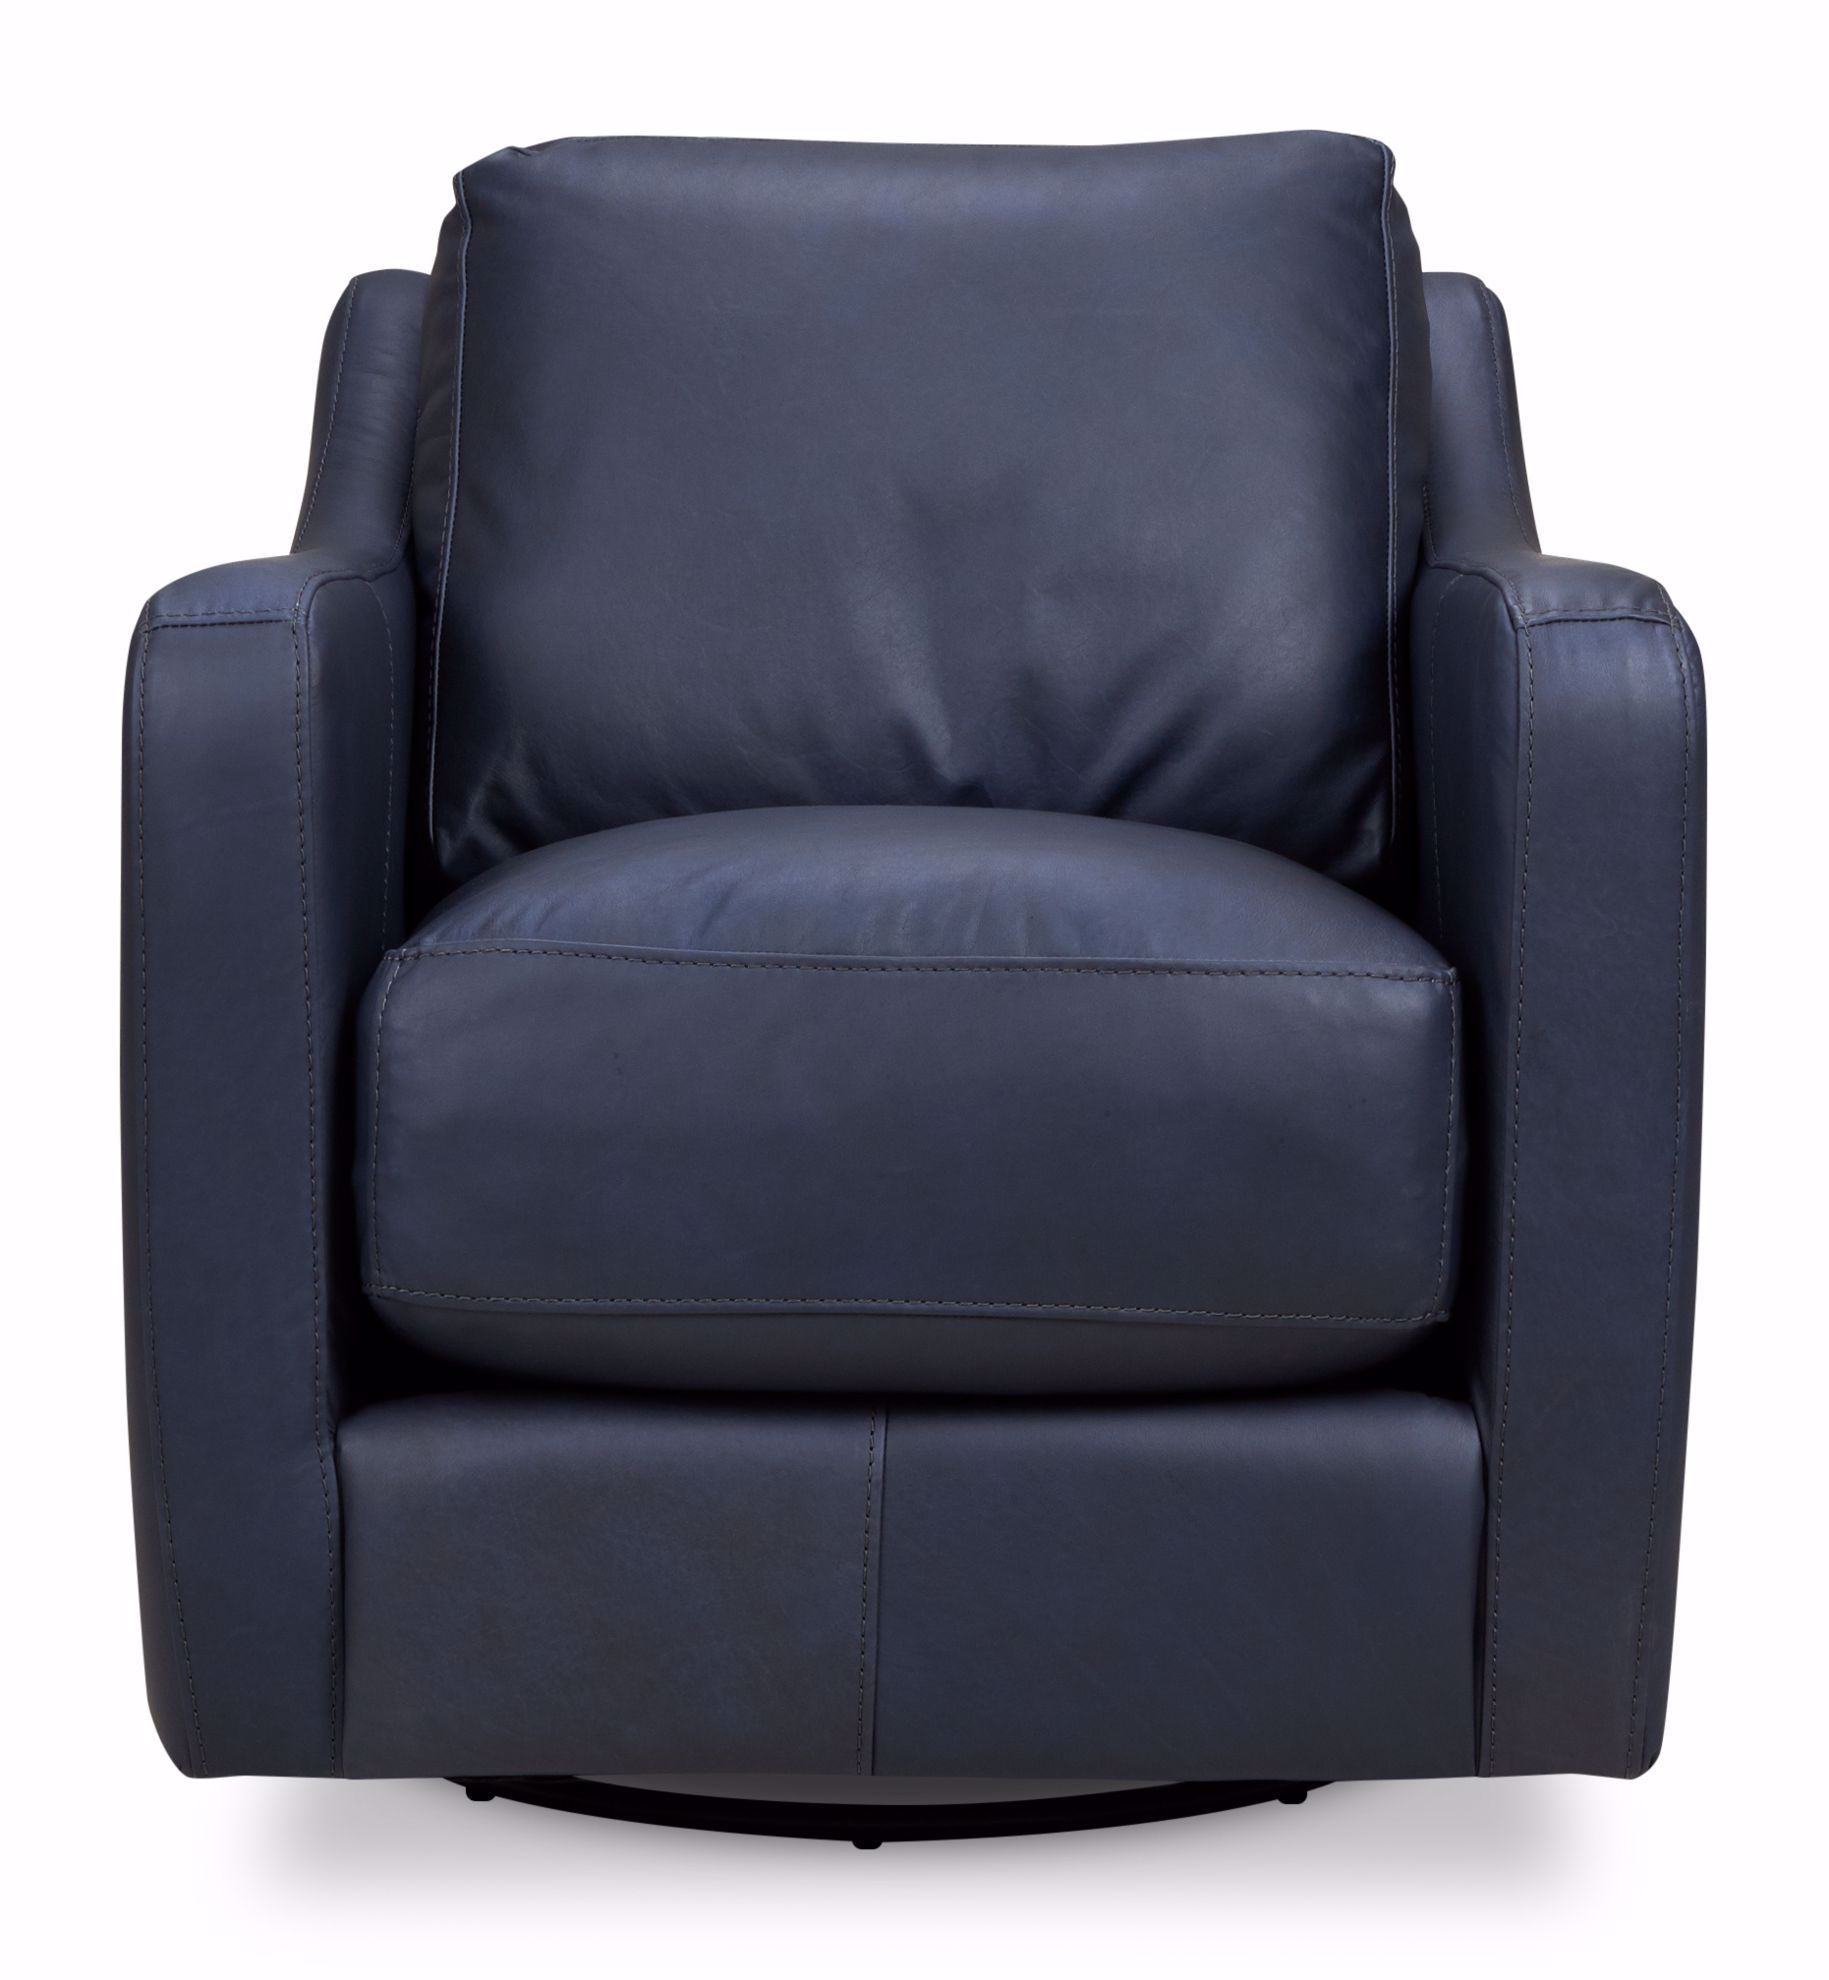 Picture of Chelsea Blue-Gray Swivel Chair